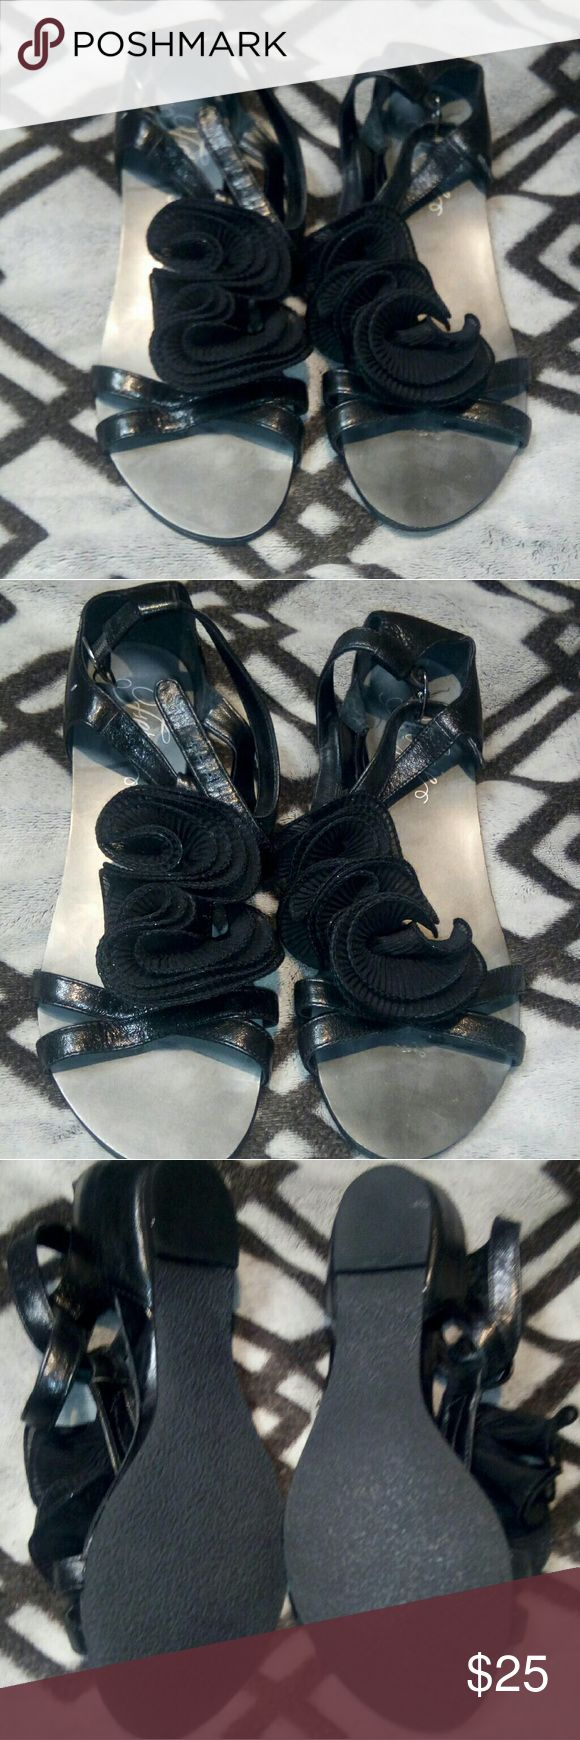 """Fergie Isotope black sandals Chic and casual.leather upper.heel height of about 1"""".Also features buckles.ankle straps.open toe.ruffles detail.in great condition.size 7M. Fergie Shoes Sandals"""